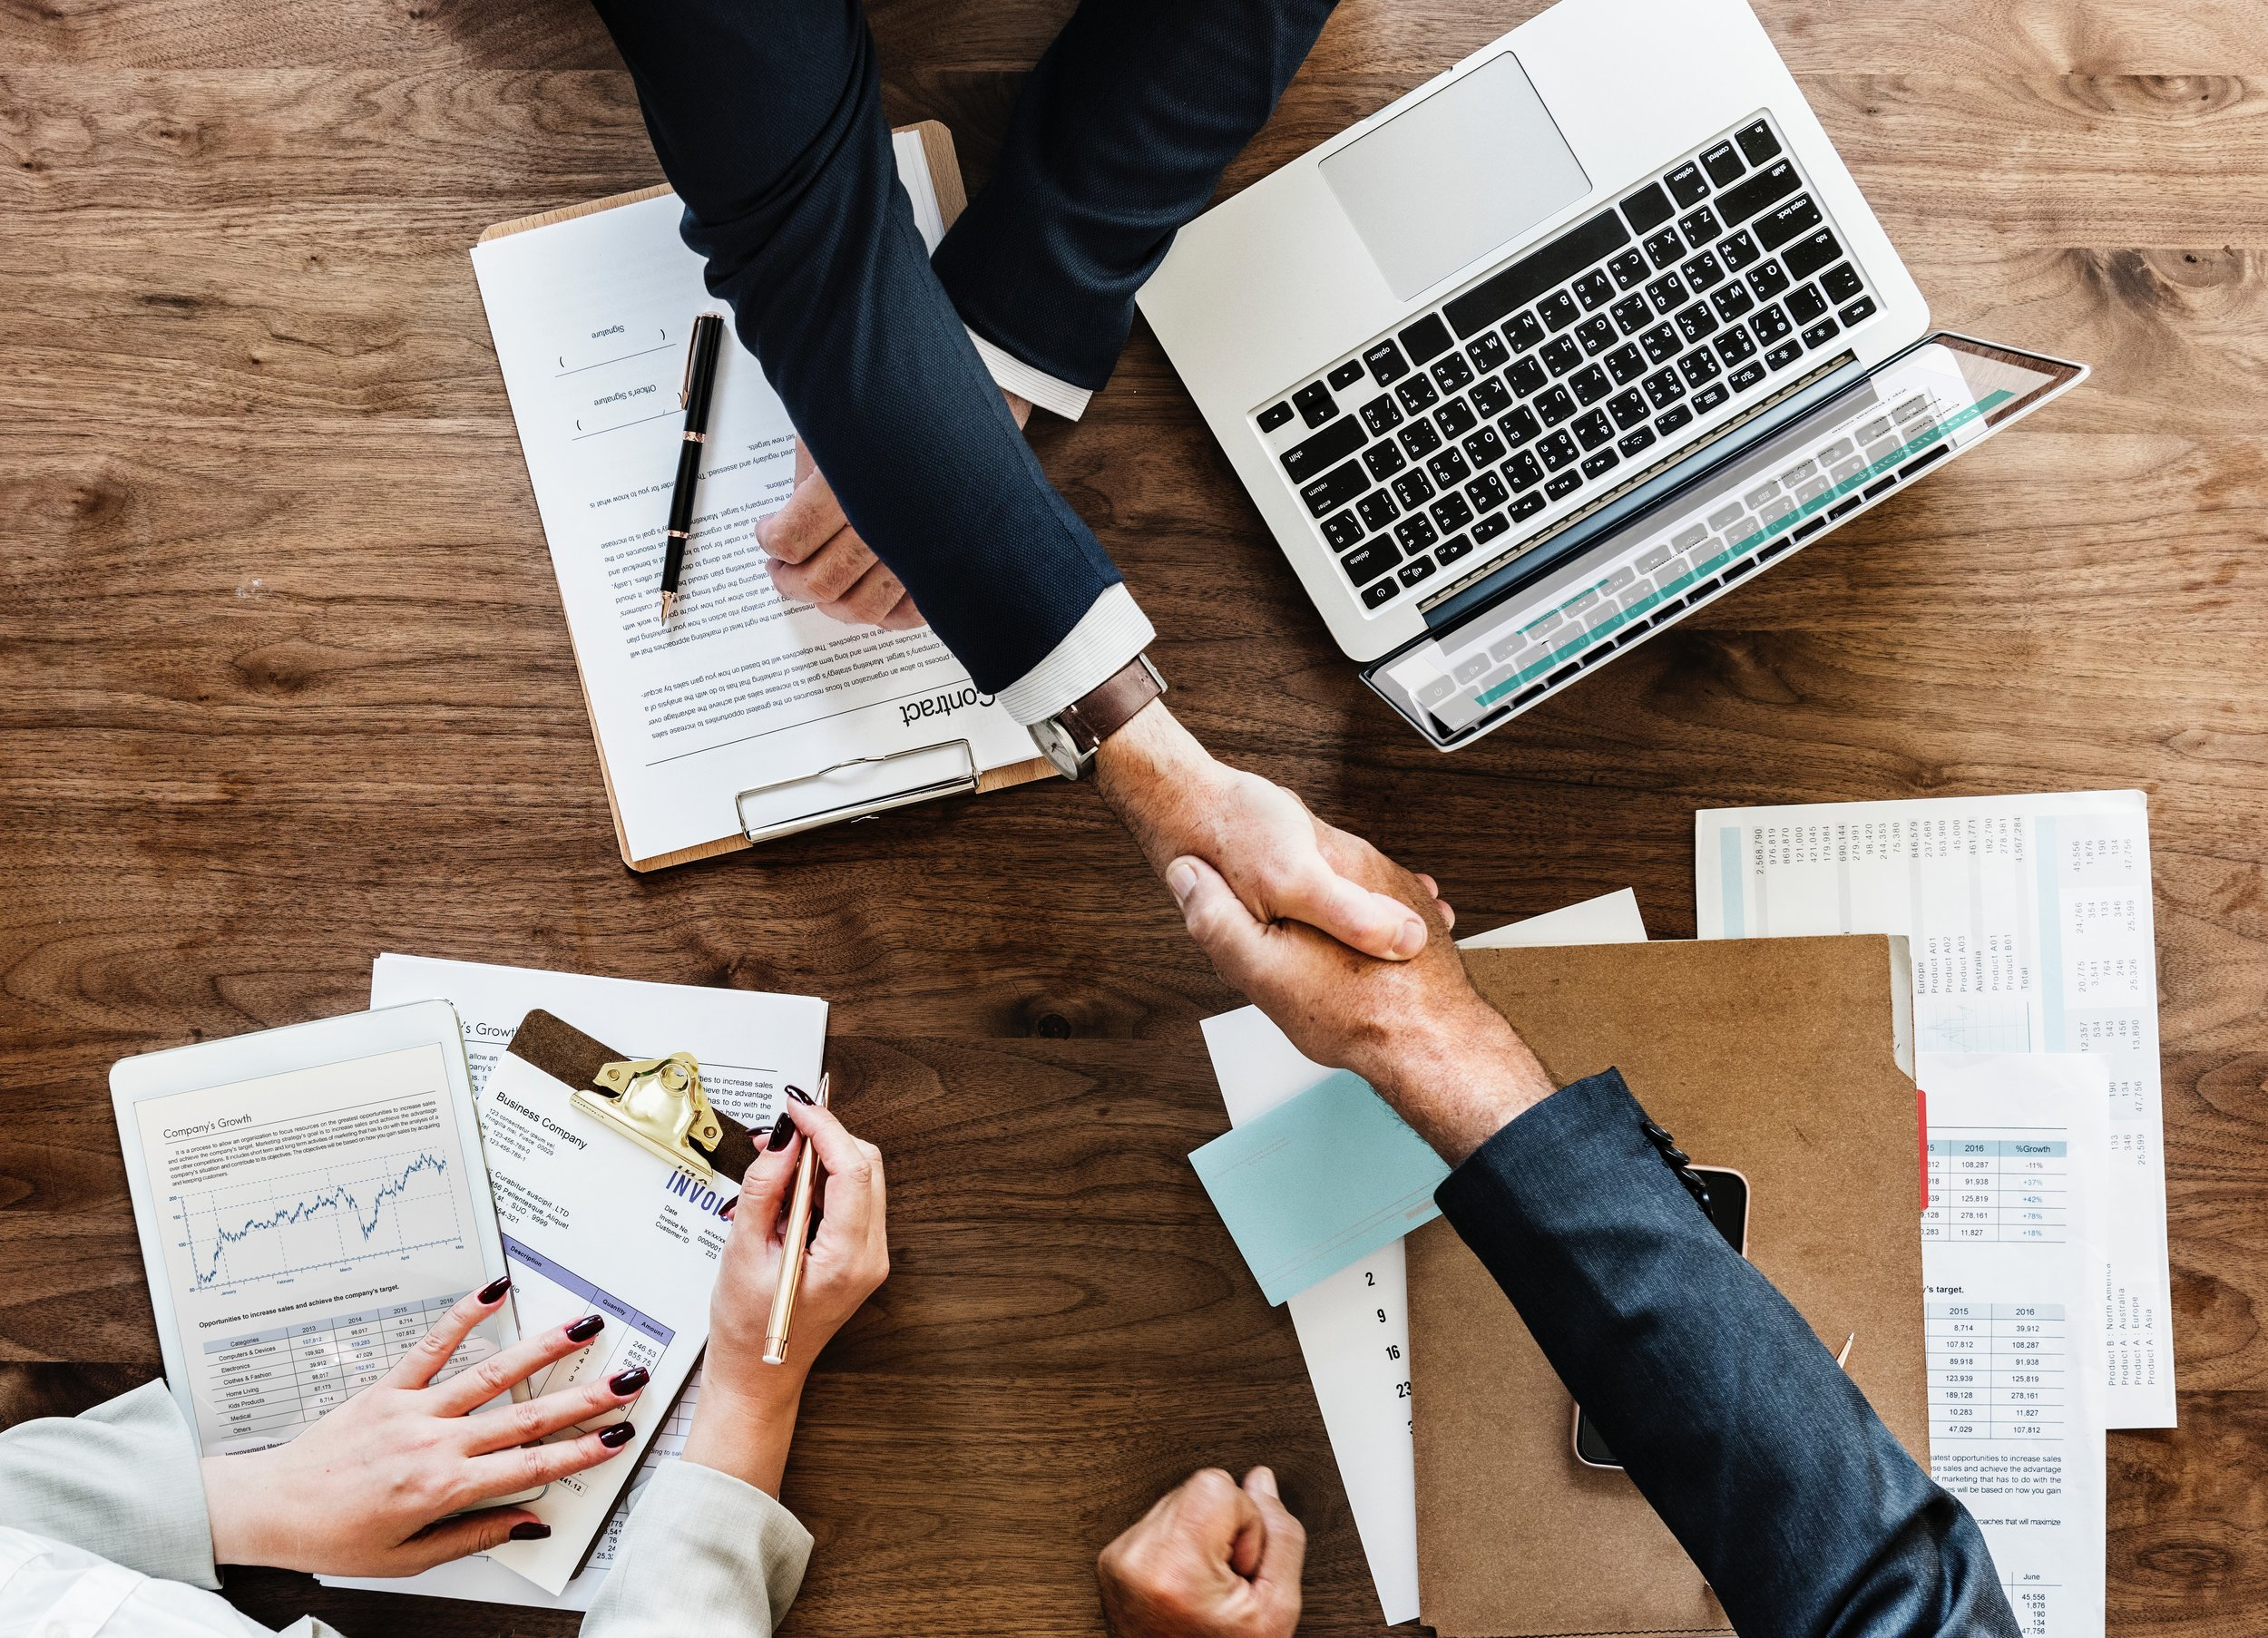 Our Approach - We use a multi-disciplinary approach and work with your other advisors to provide you with comprehensive solutions.